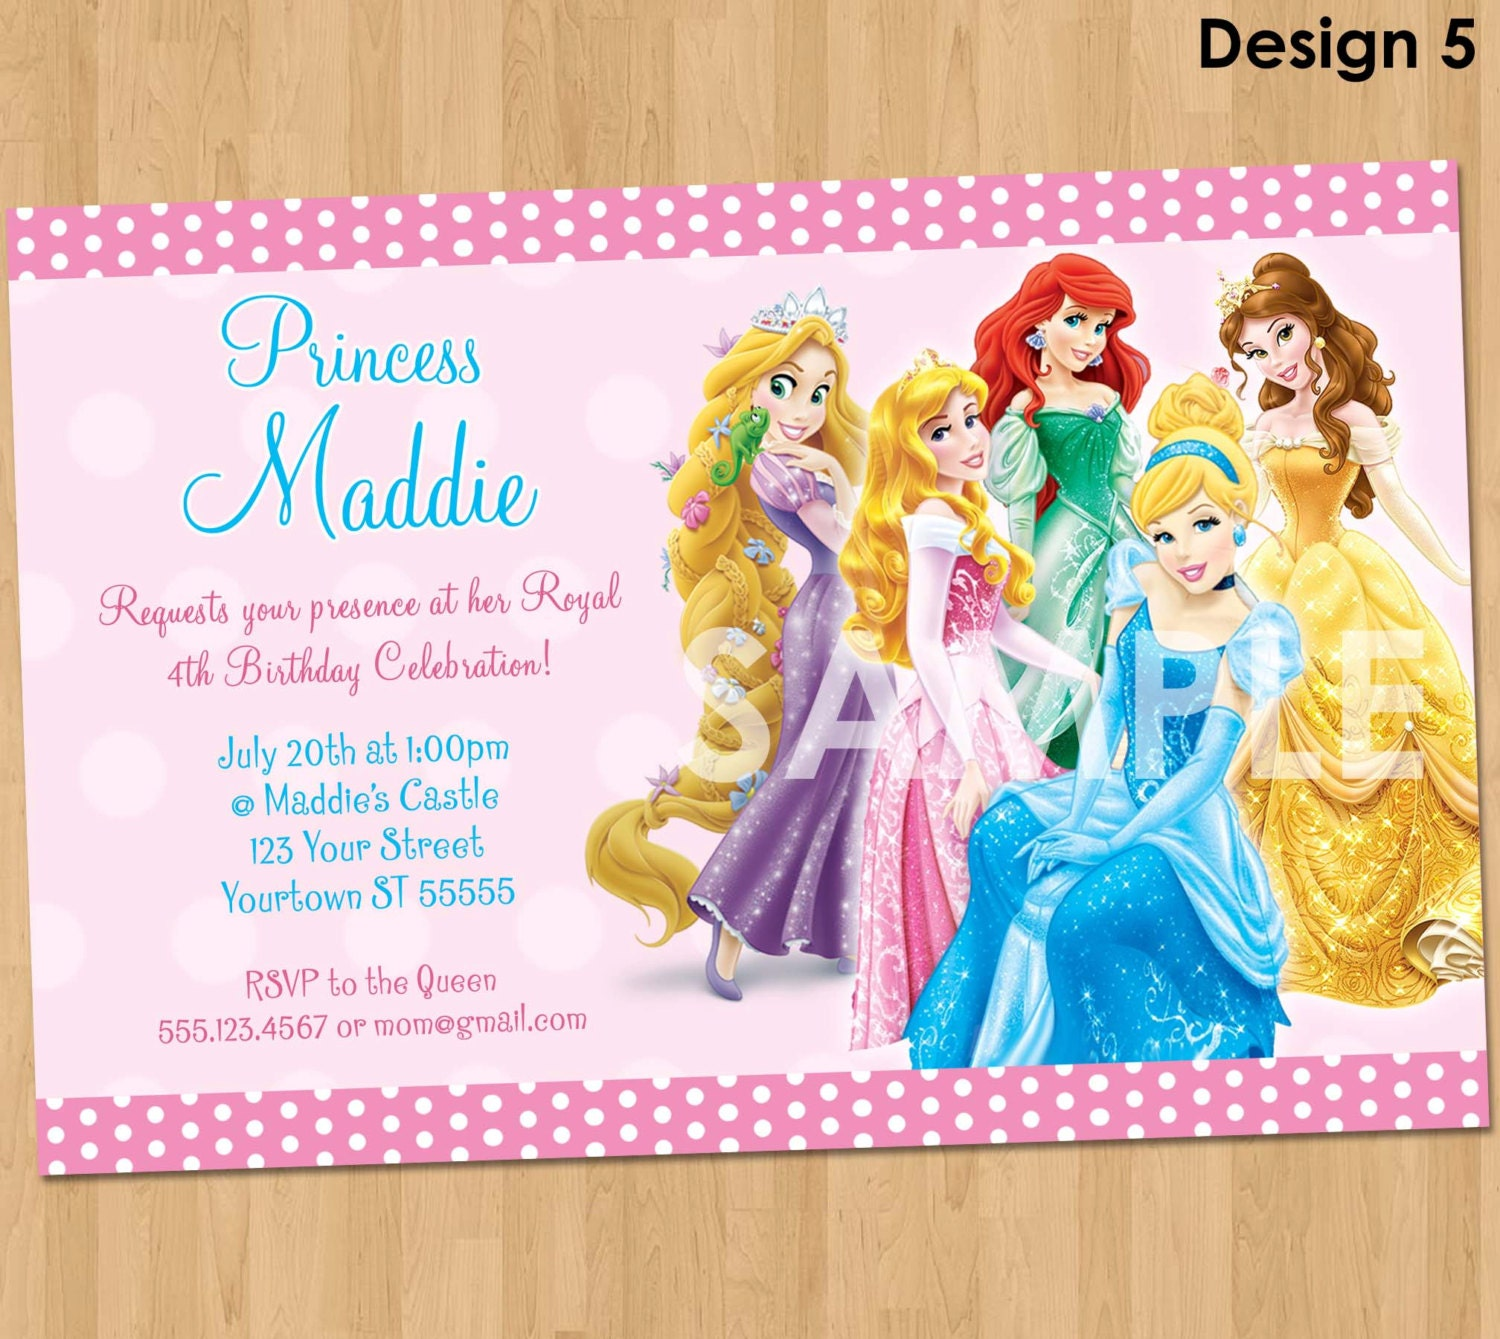 Princess Invitation Disney Princess Invitation Birthday – Personalized Disney Birthday Invitations